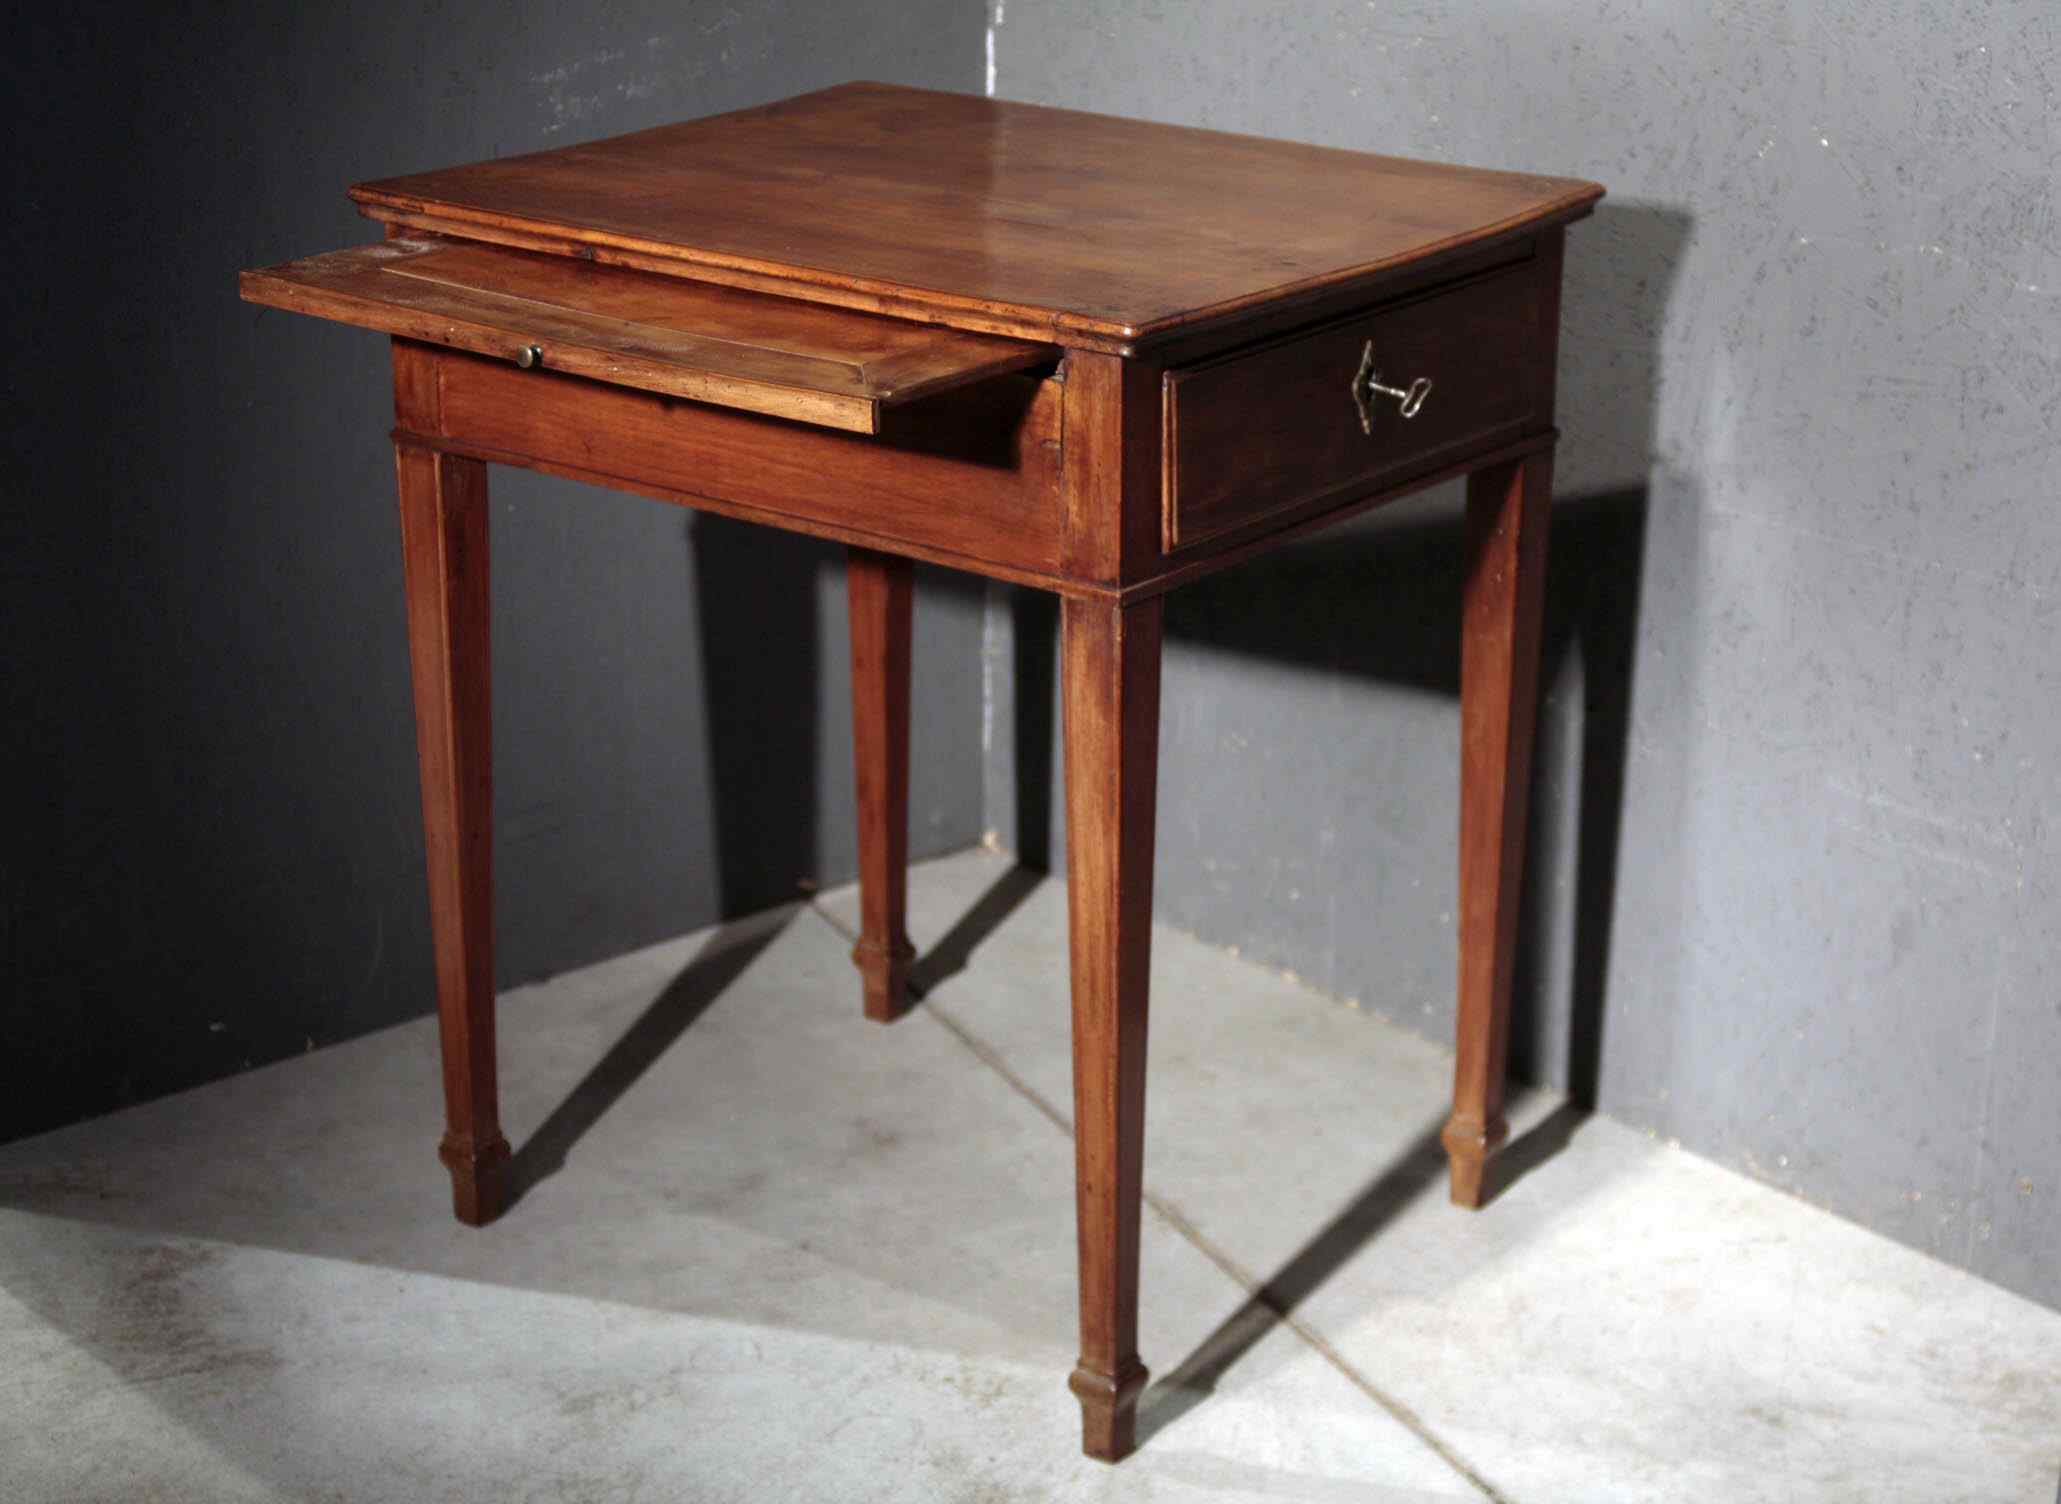 Small desk-table, Veneto, Louis XVI